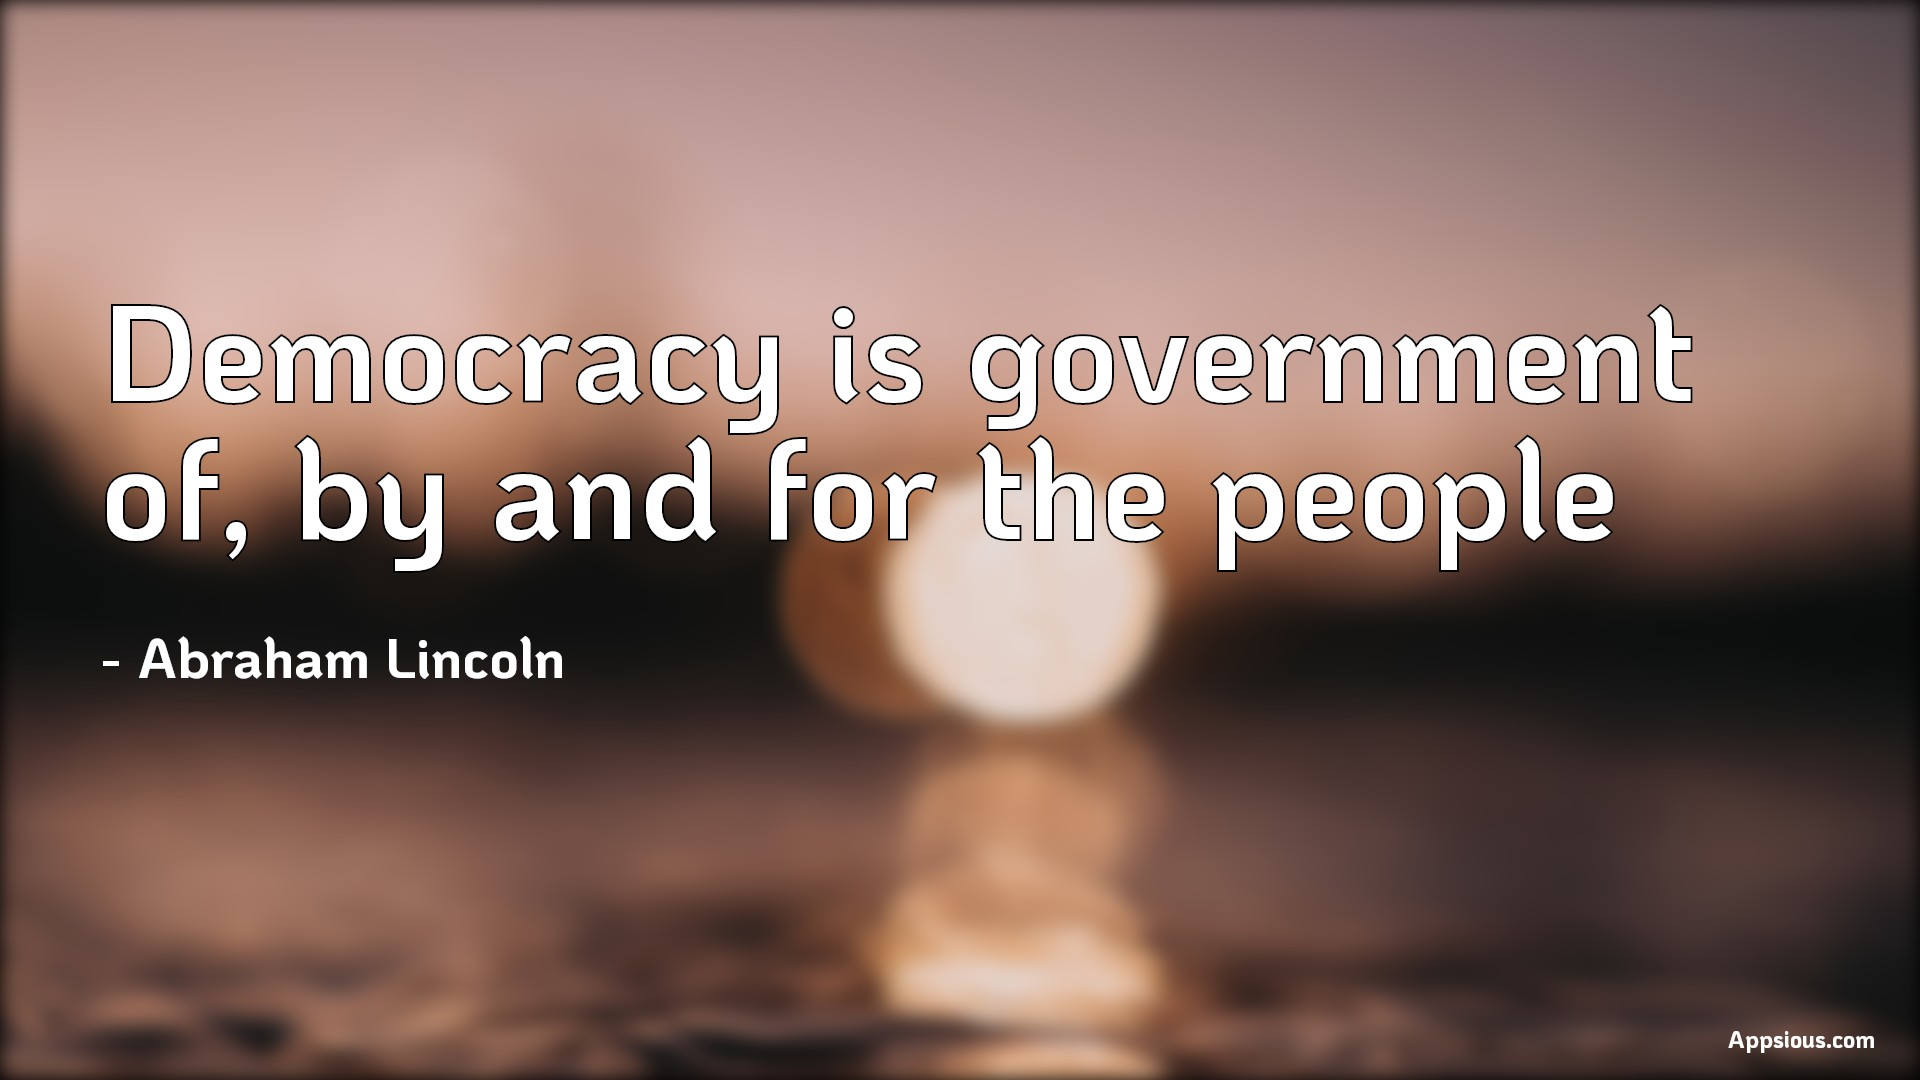 Democracy is government of, by and for the people